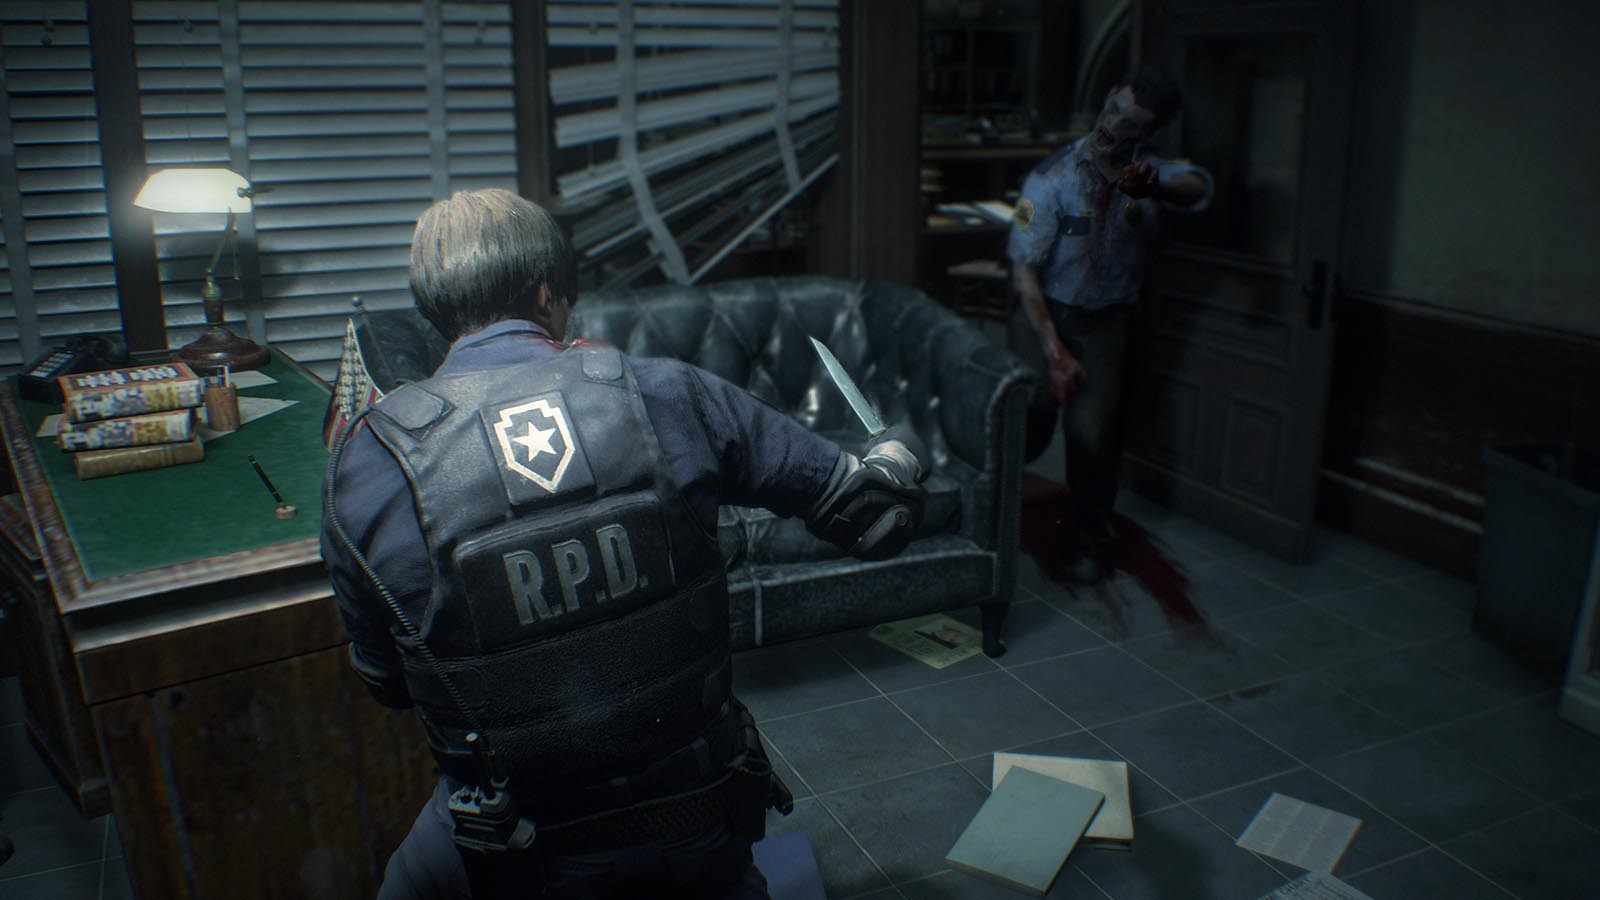 Screenshot for the game Resident Evil 2 / Biohazard RE: 2 - Deluxe Edition (2019) PC | Repack by R.G. The mechanics